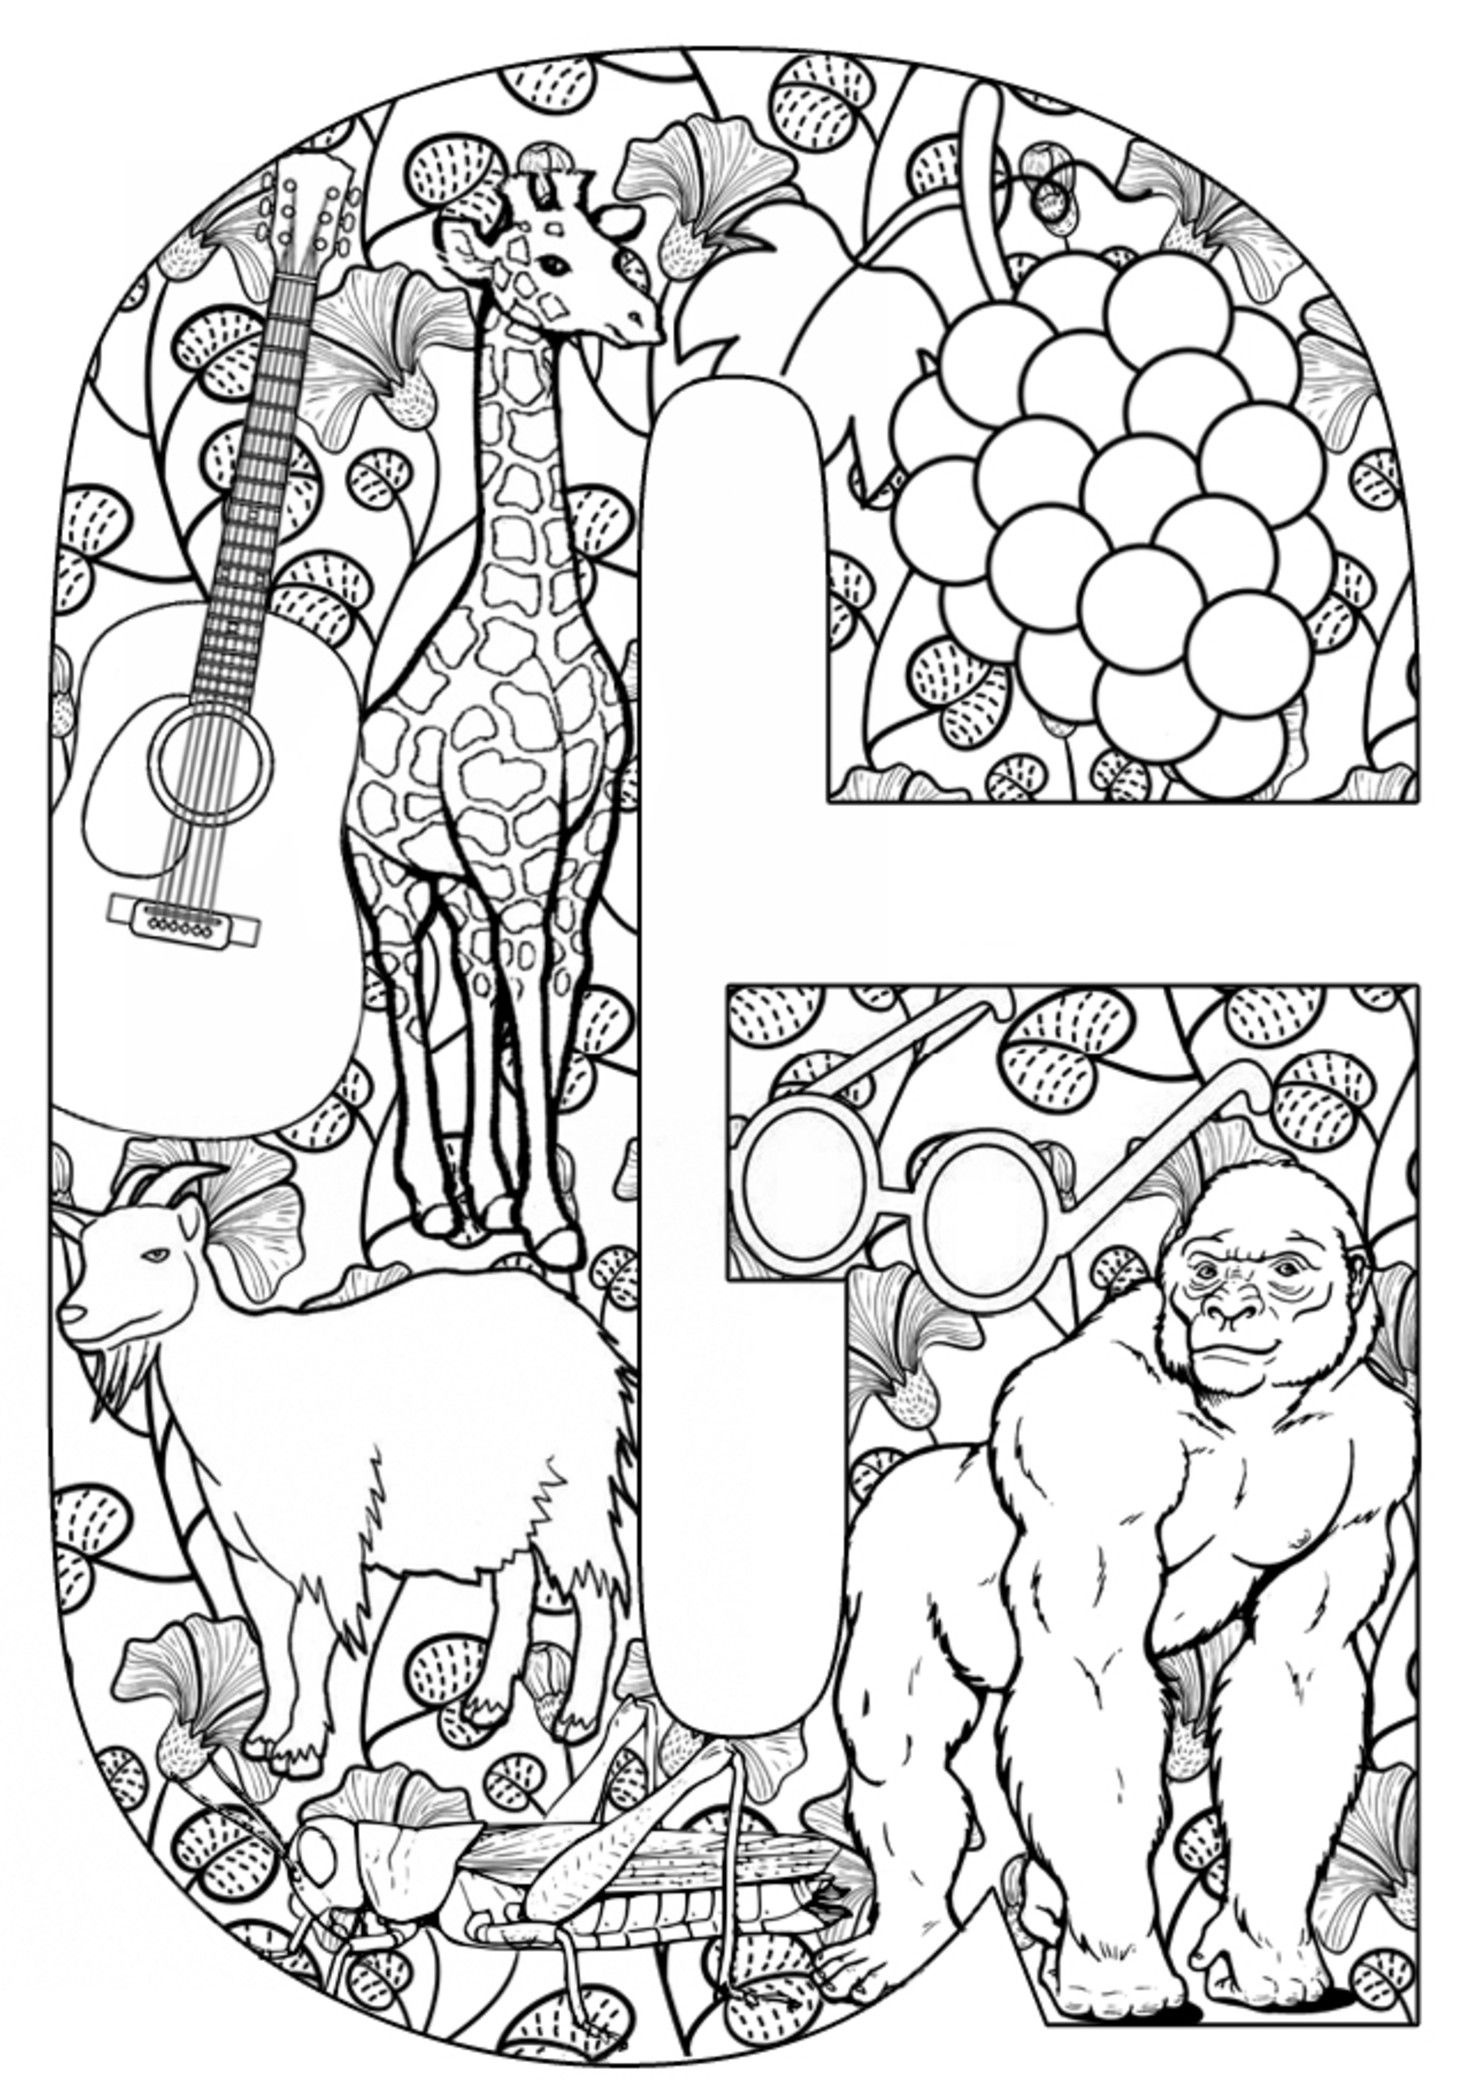 Teach Your Kids Their Abcs The Easy Way With Free Printables - Free Printable Letter G Coloring Pages